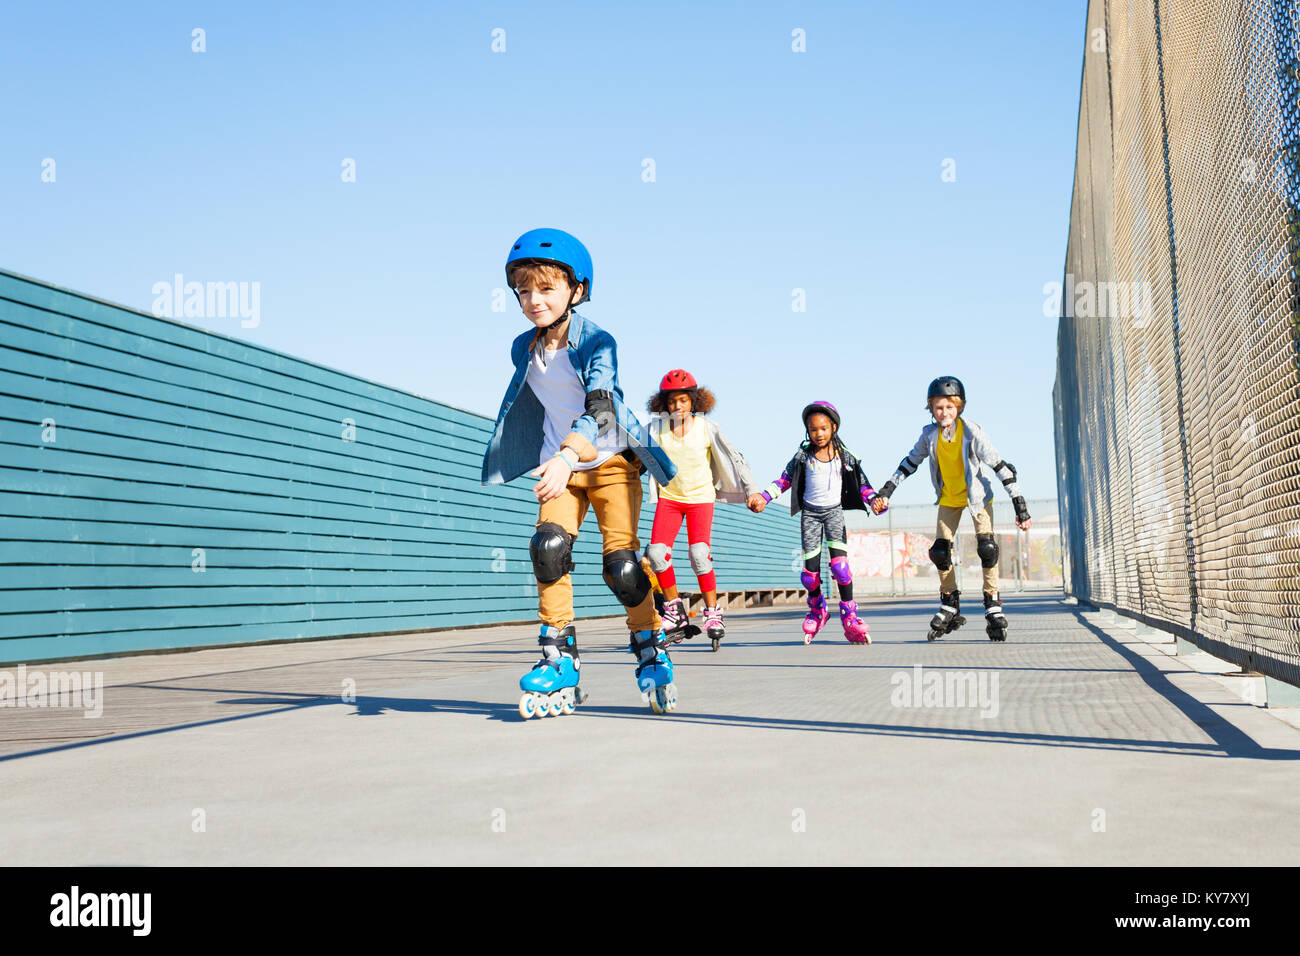 Happy preteen boy playing roller skates with friends outdoors at stadium - Stock Image